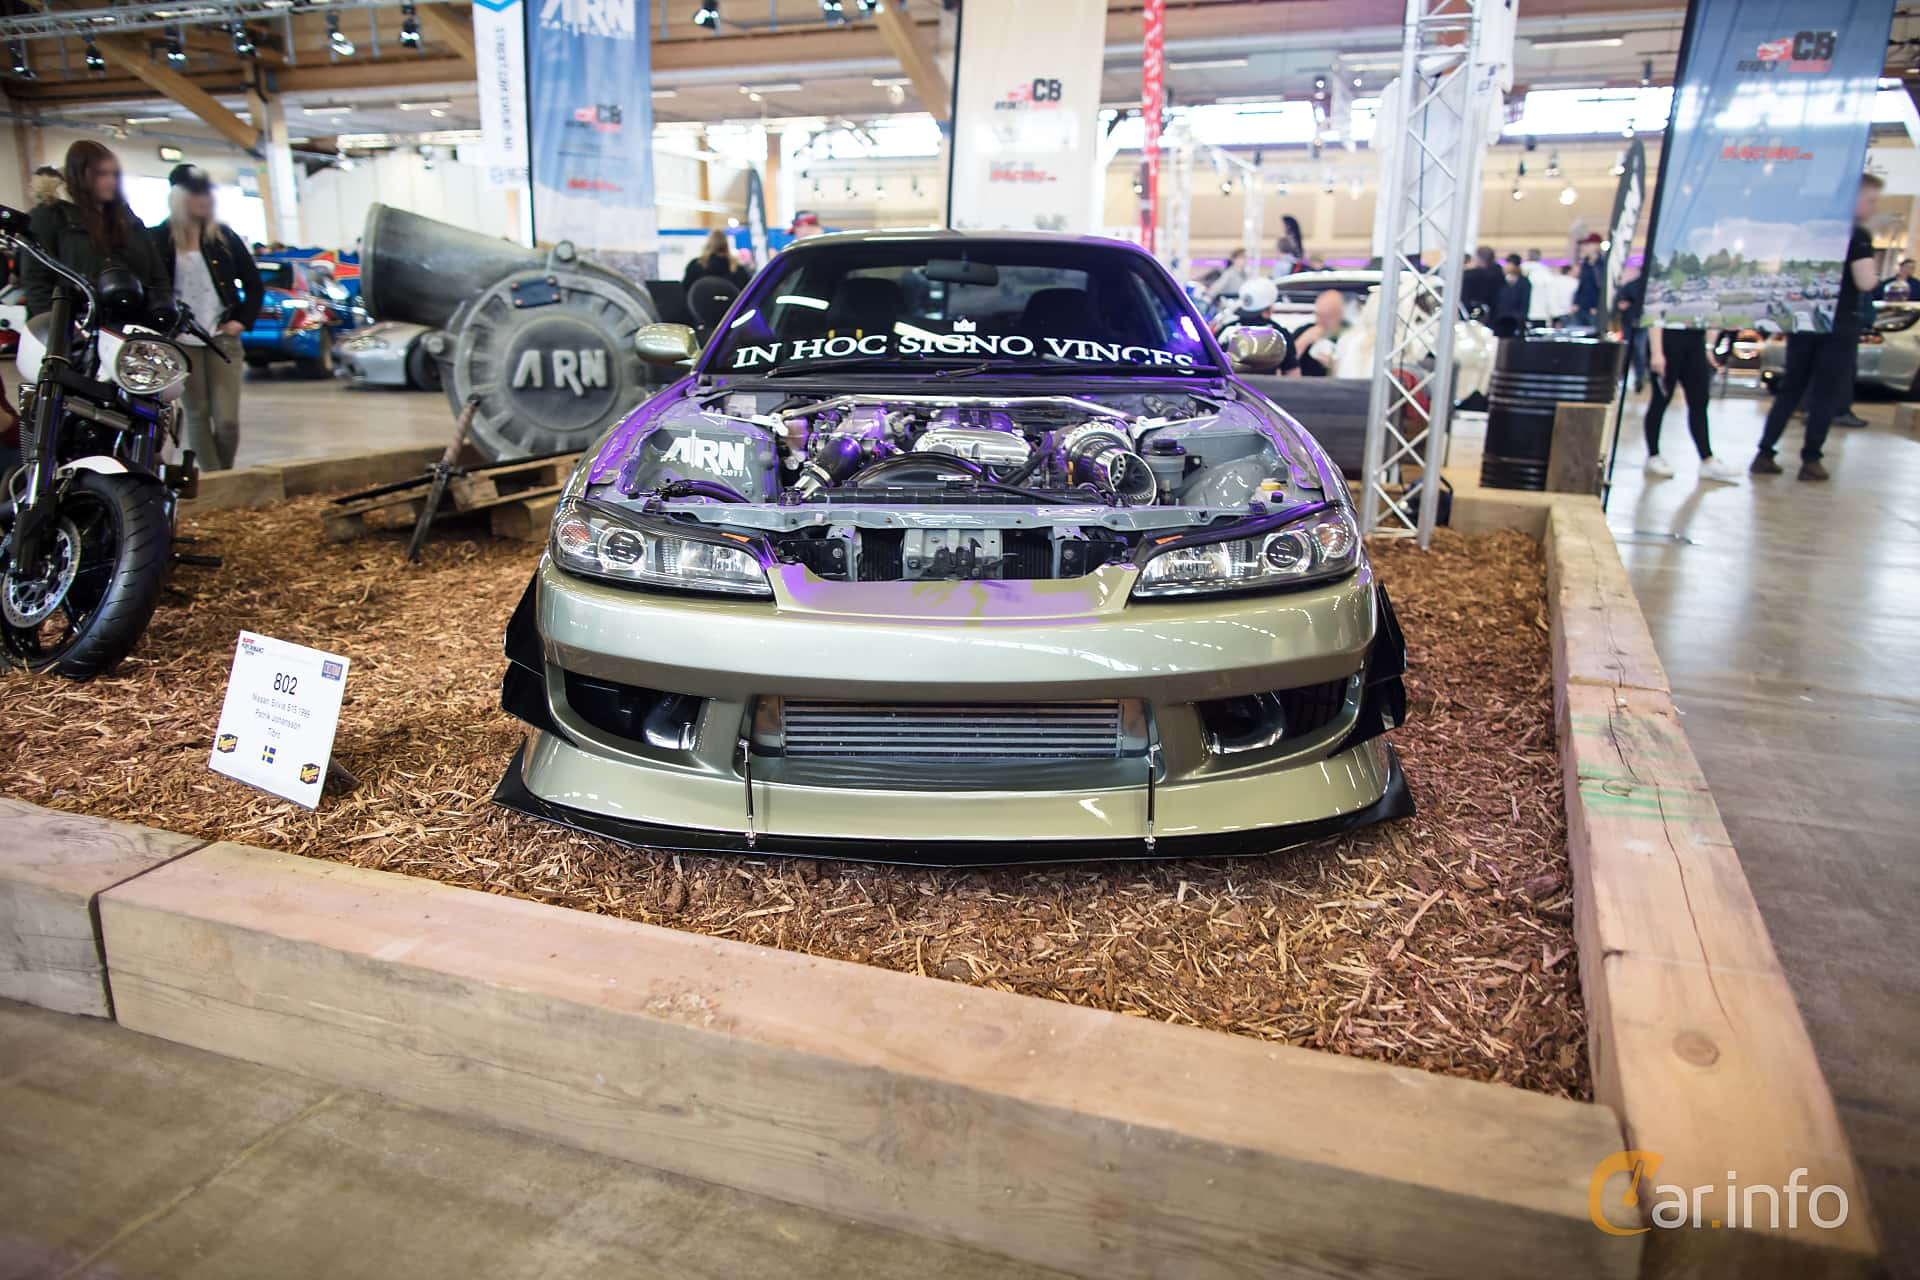 3 images of nissan silvia 2000 turbo coup 2 0 manual 250hp 2000 rh car info